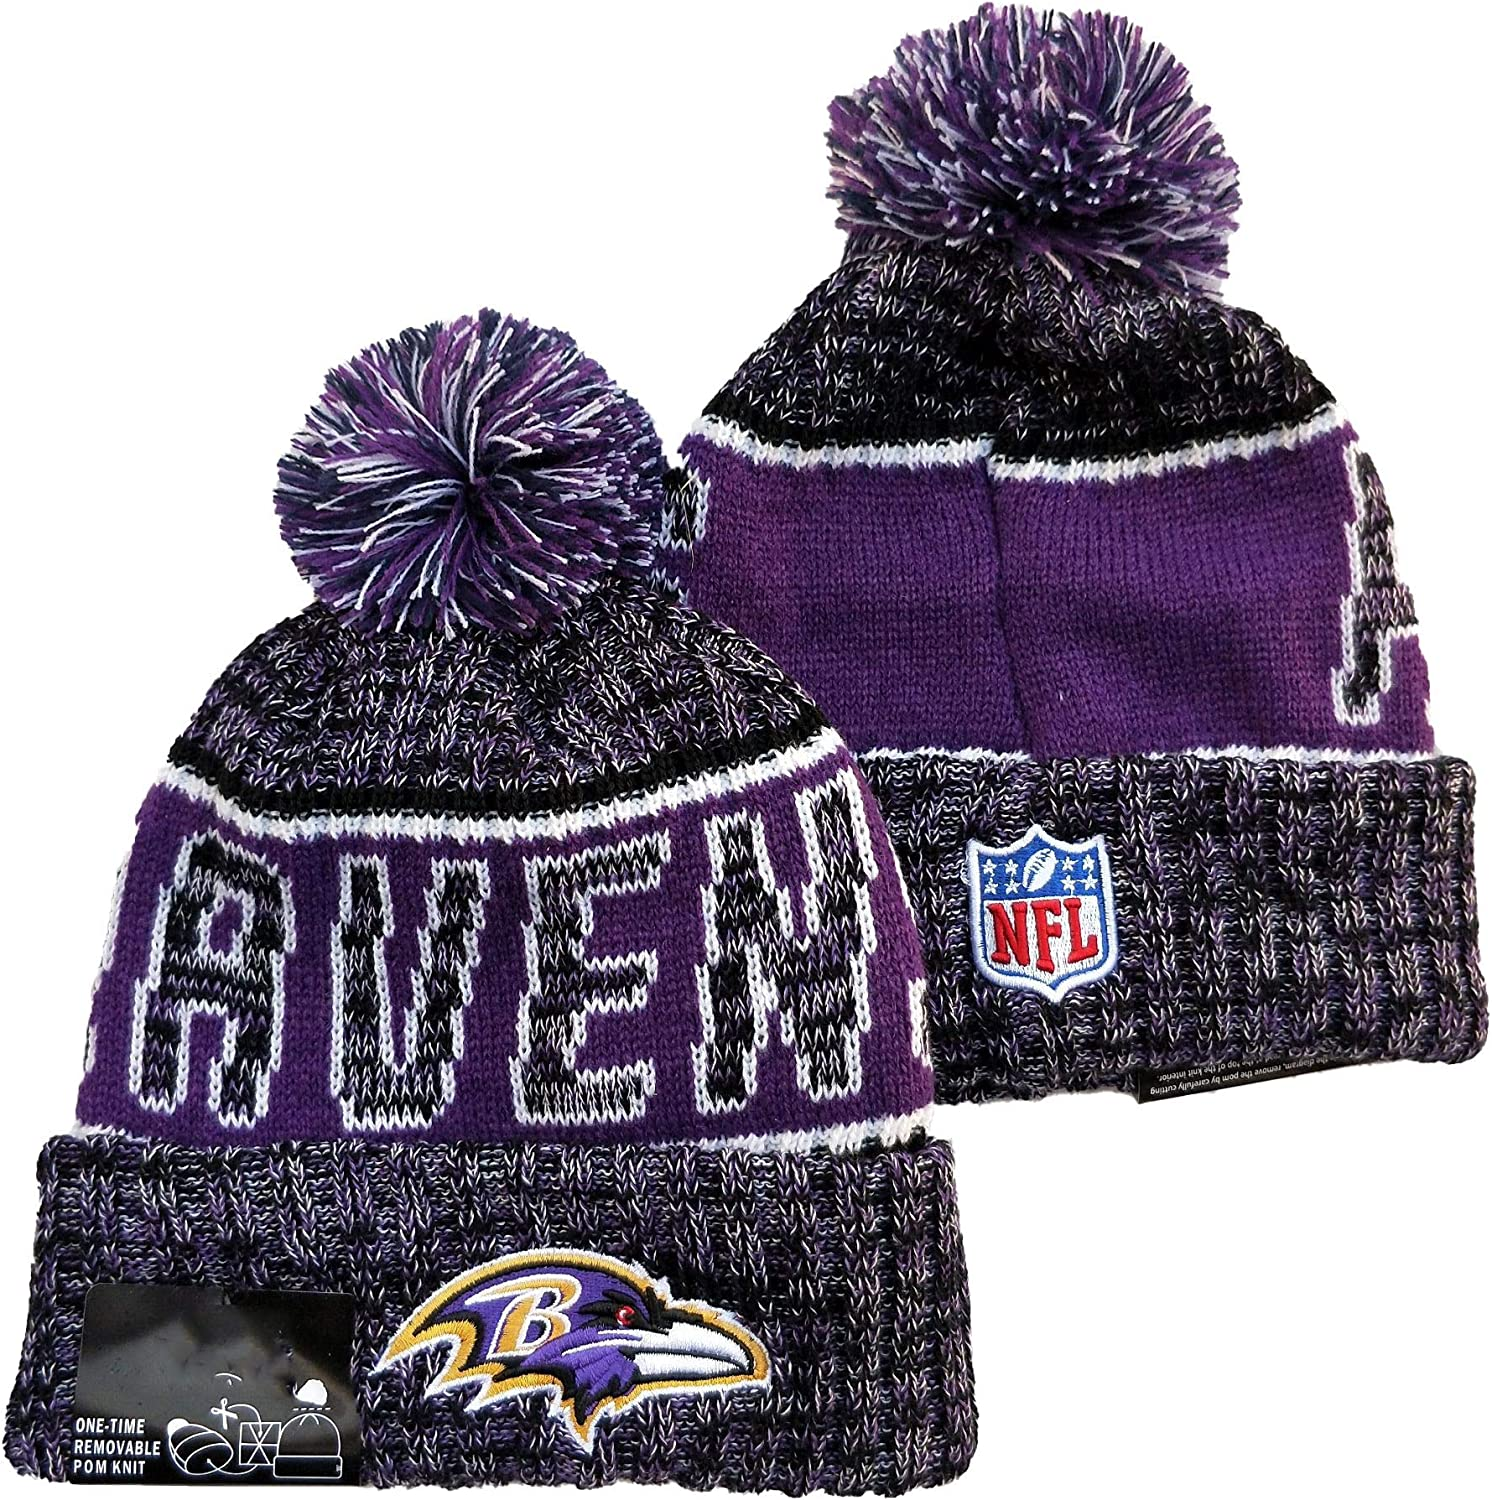 Winter Knit Beanies Fans Hats Sports Team Outdoor Fashion Caps Wool Knit for Gift Pack of 1 Hat